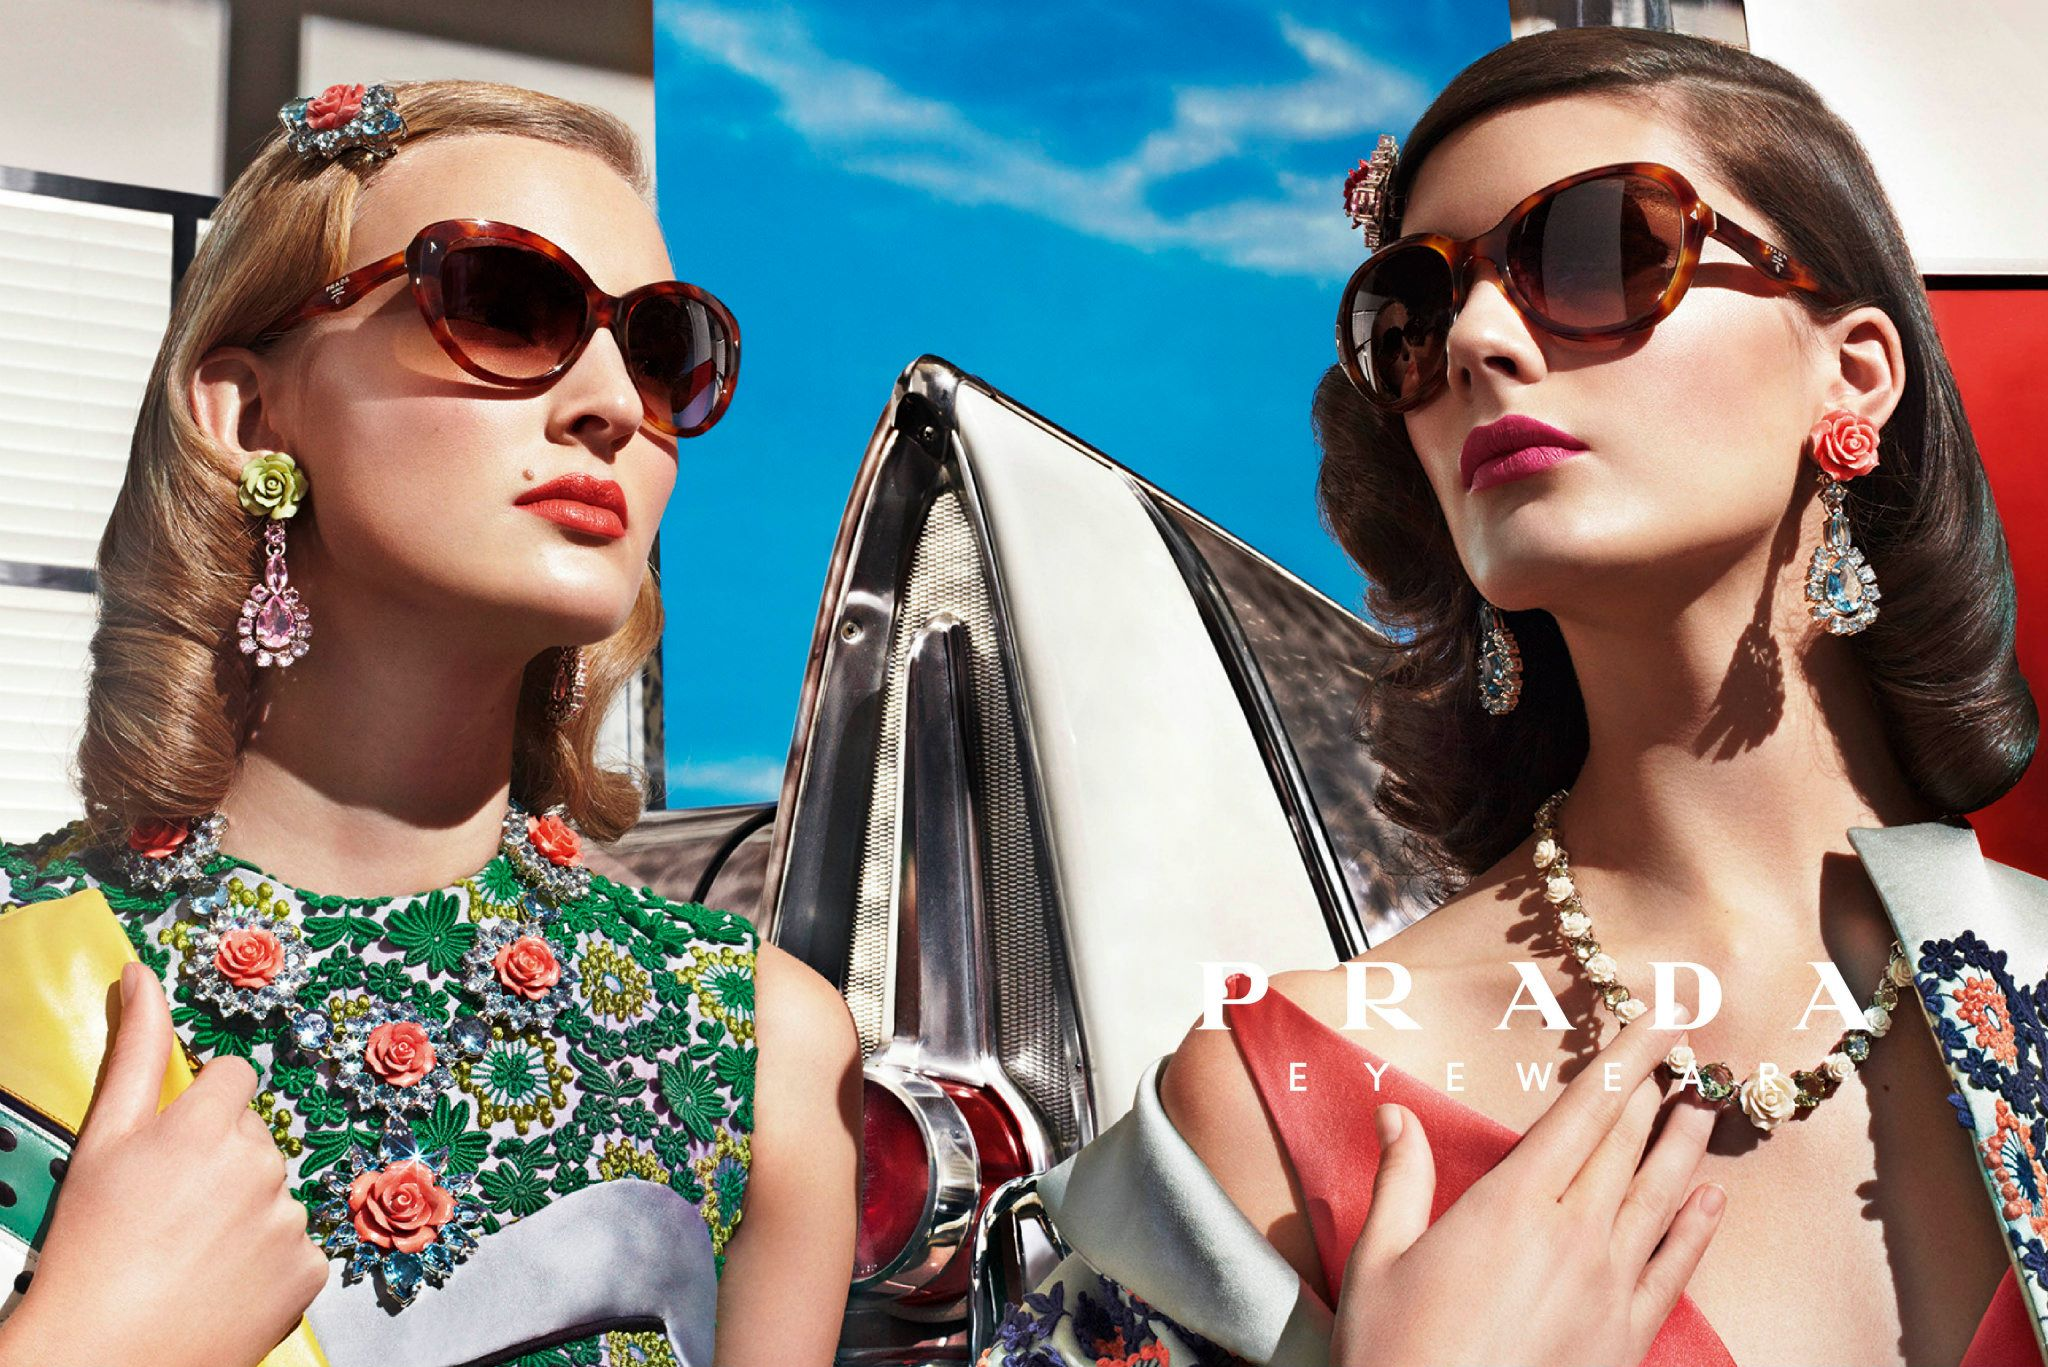 694bb533832 Prada Spring Summer 2012 Ad Campaign. By art8amby. UPDATED ...